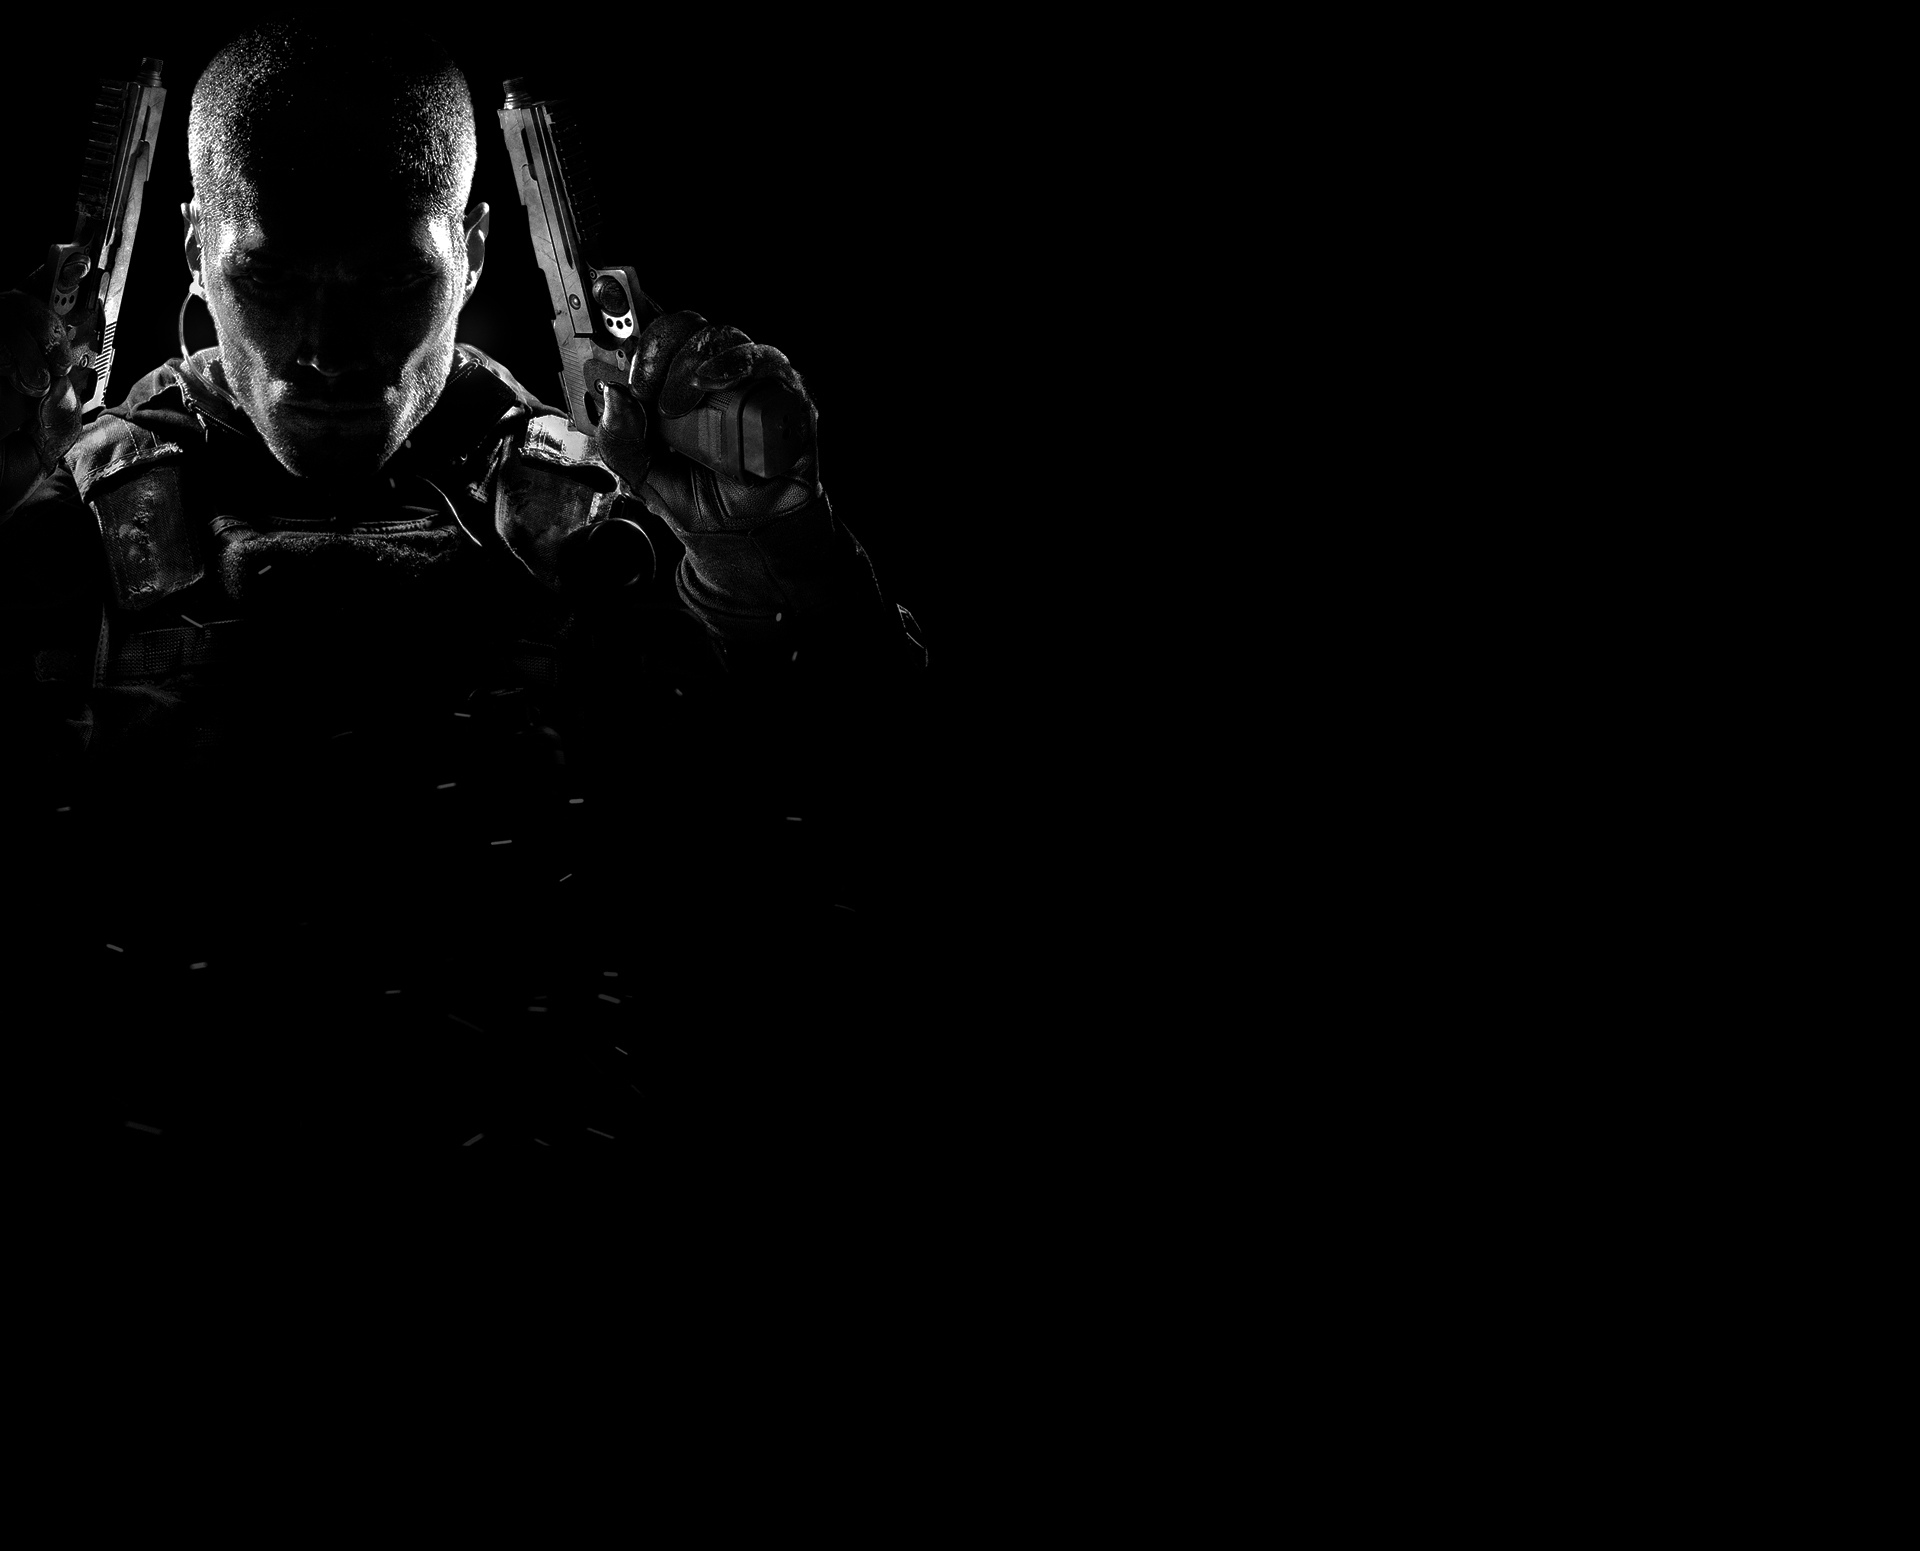 Call of Duty Wallpaper 027